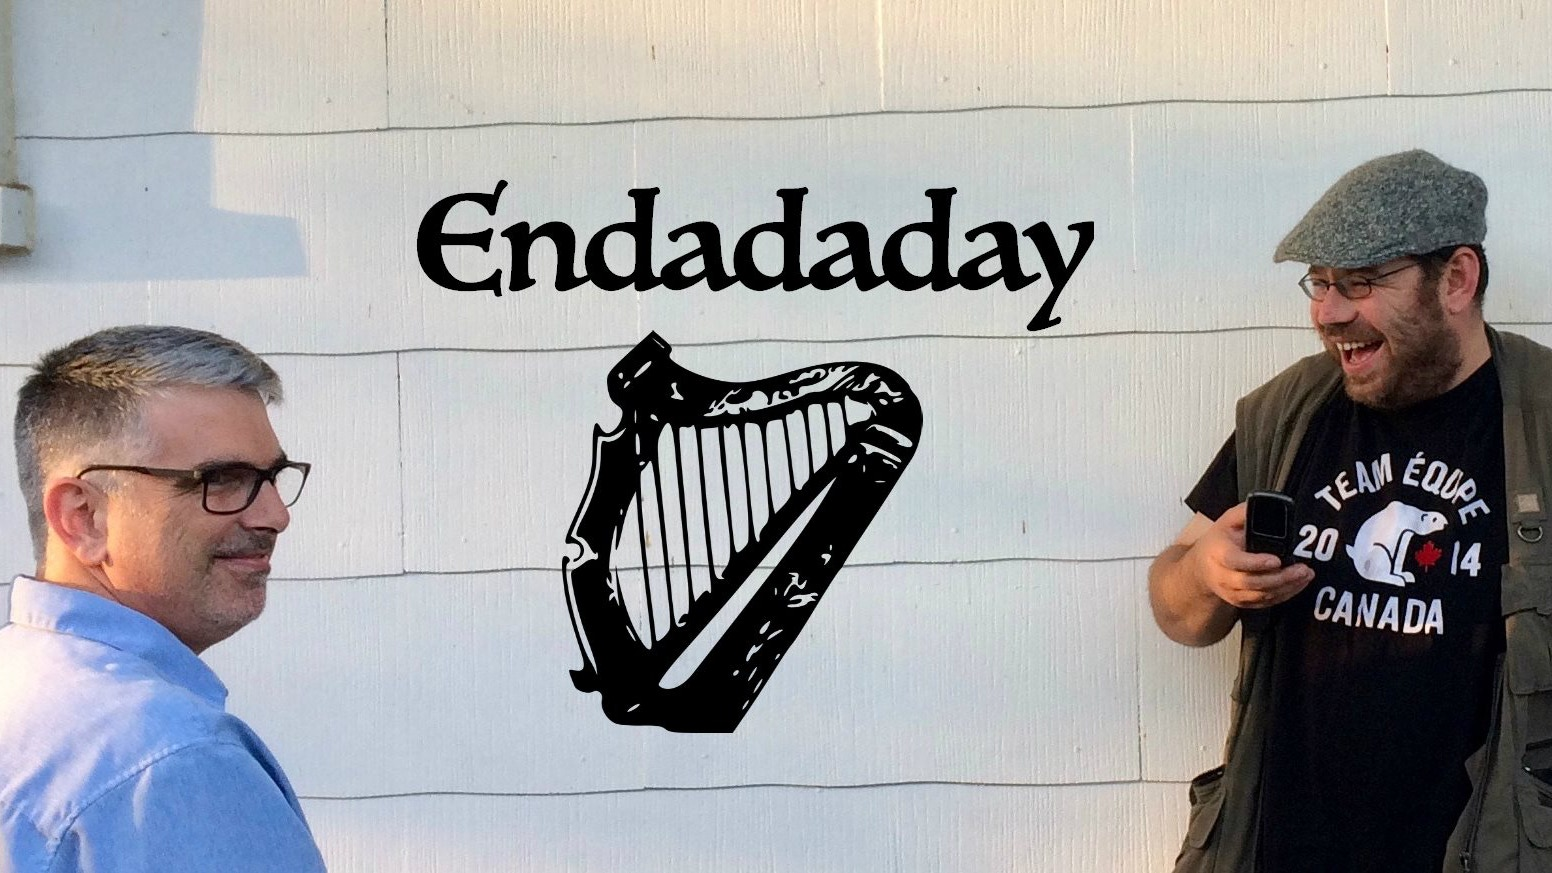 endadaday demo cd recording gigging launch by rob kaishin bondy